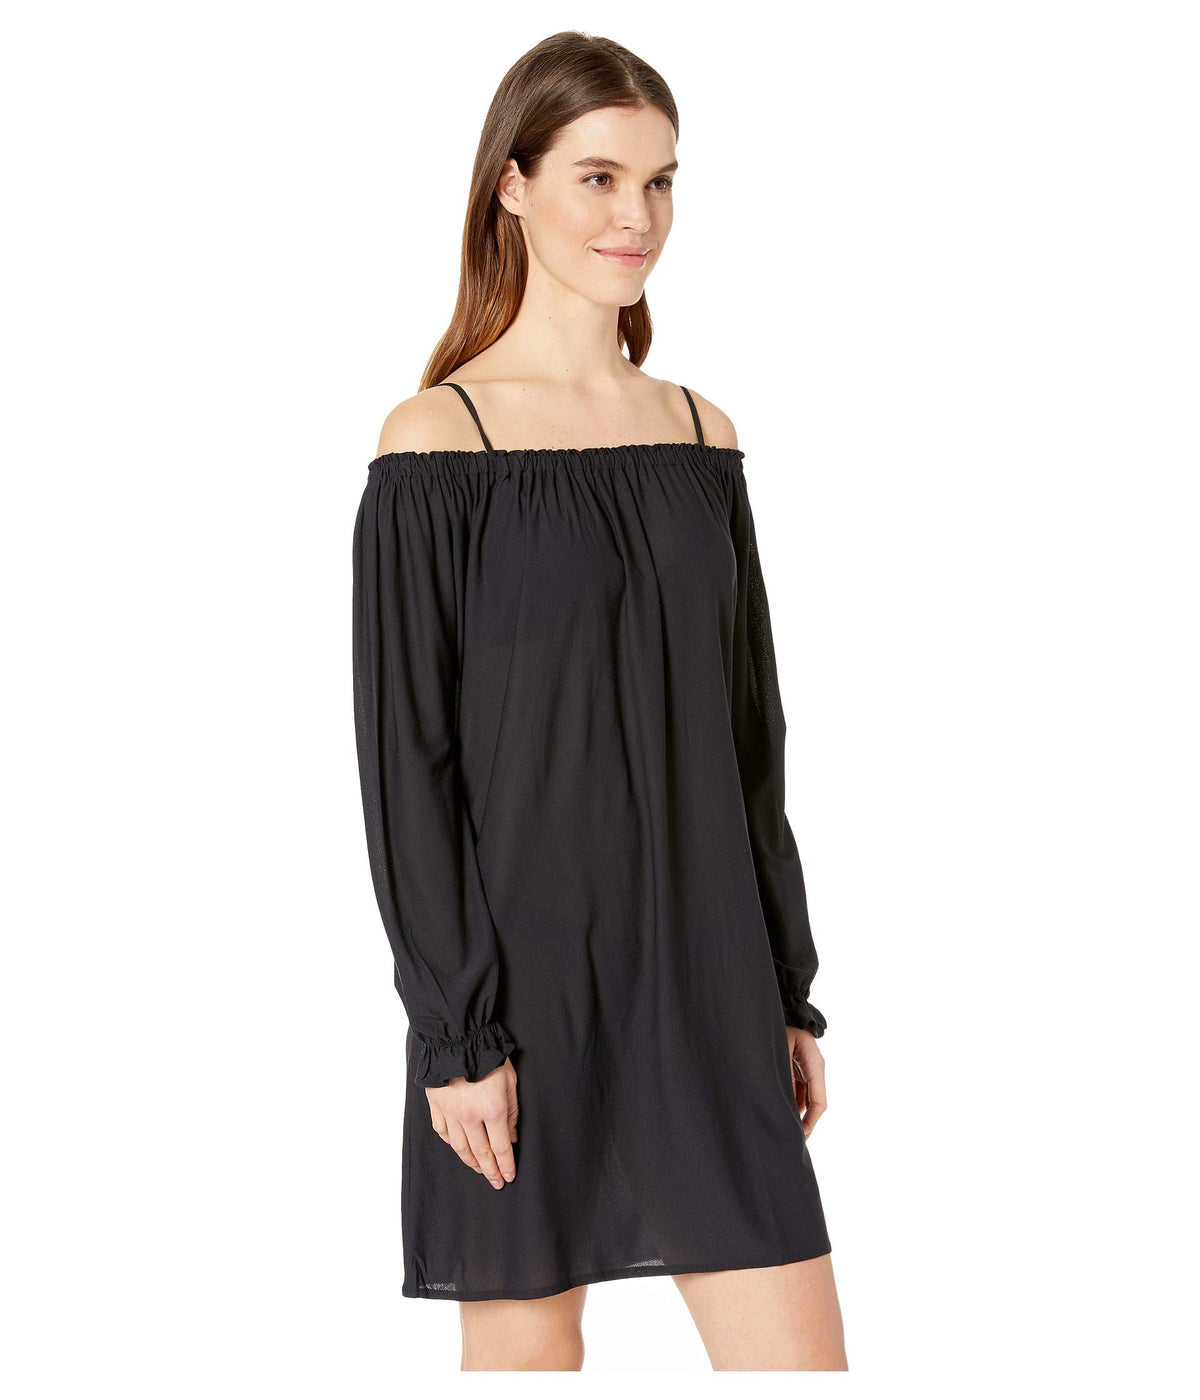 Cosita Buena Cuff Bell Sleeve Shift Dress Cover-Up